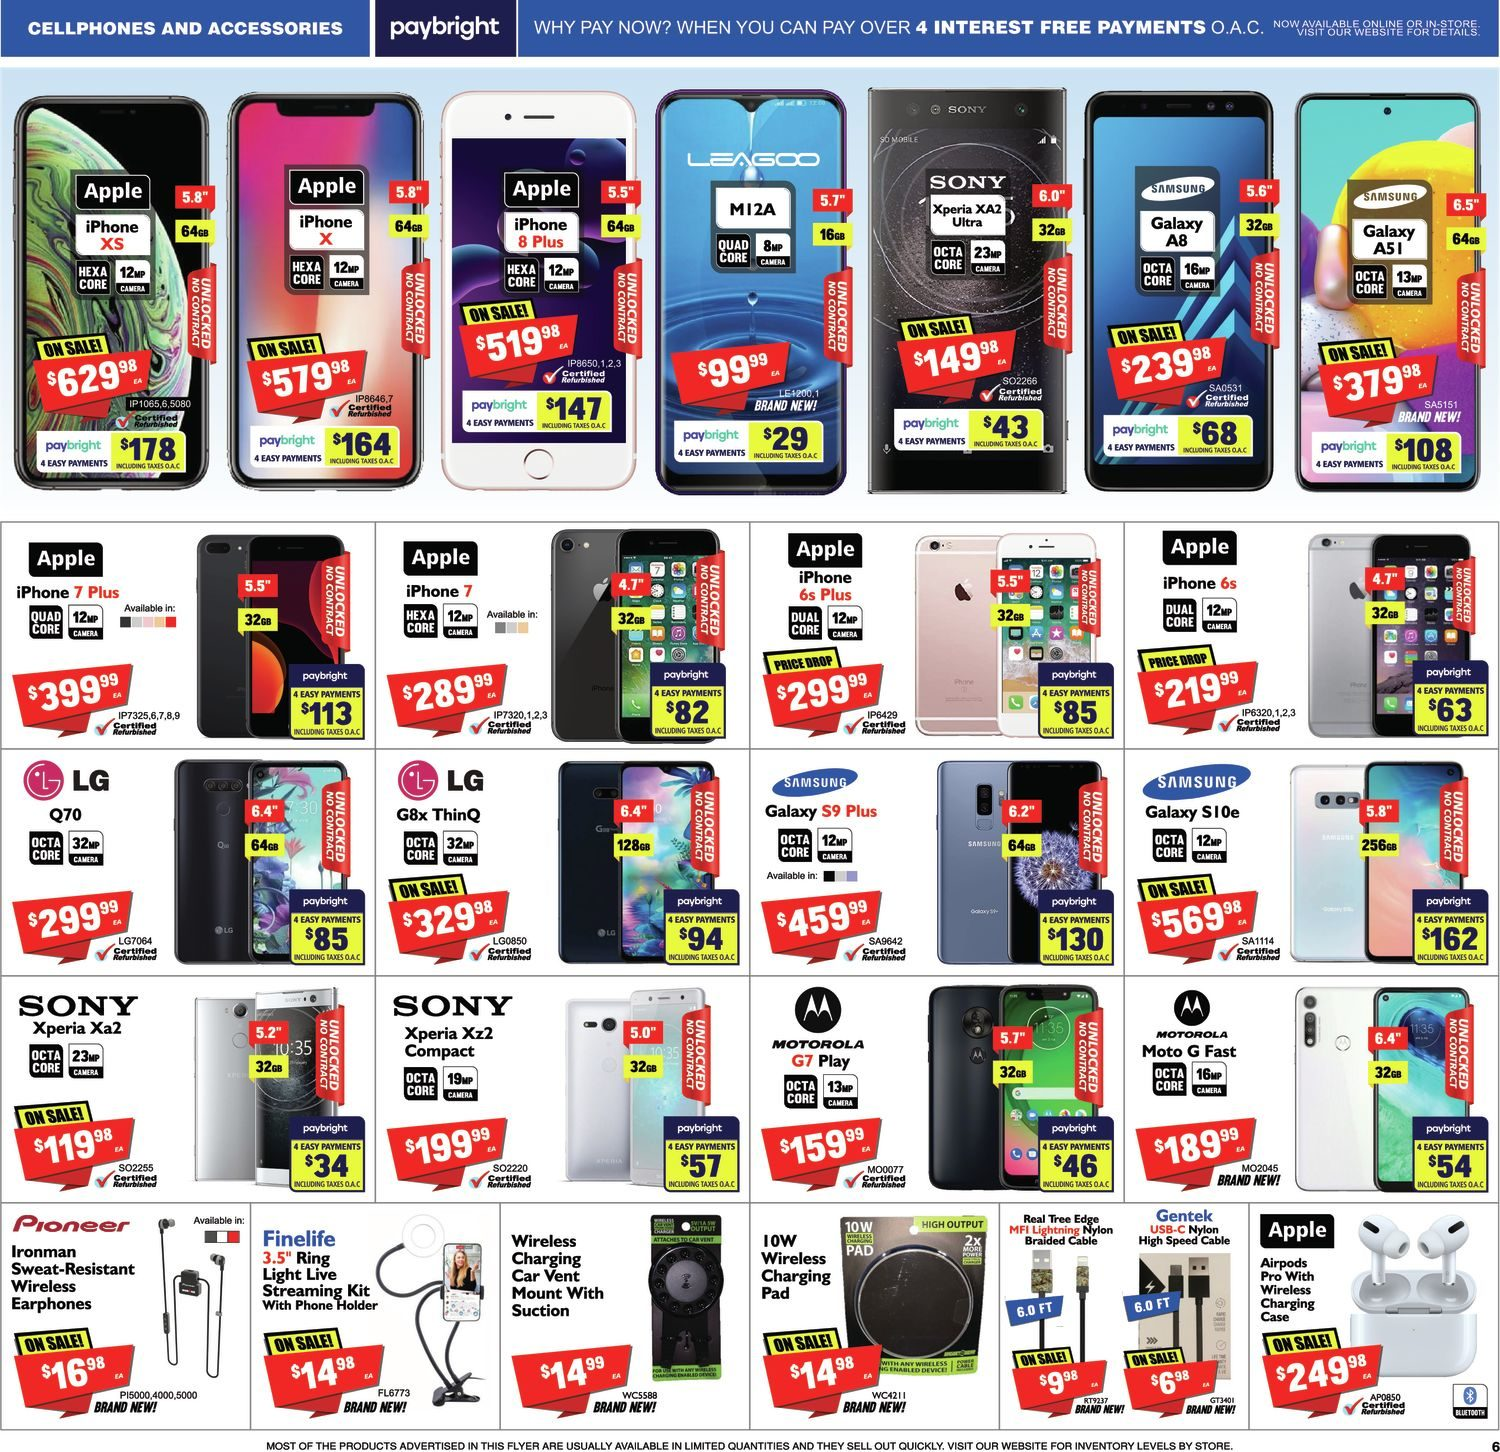 FactoryDirect - Massive Inventory Blowout! - Page 6